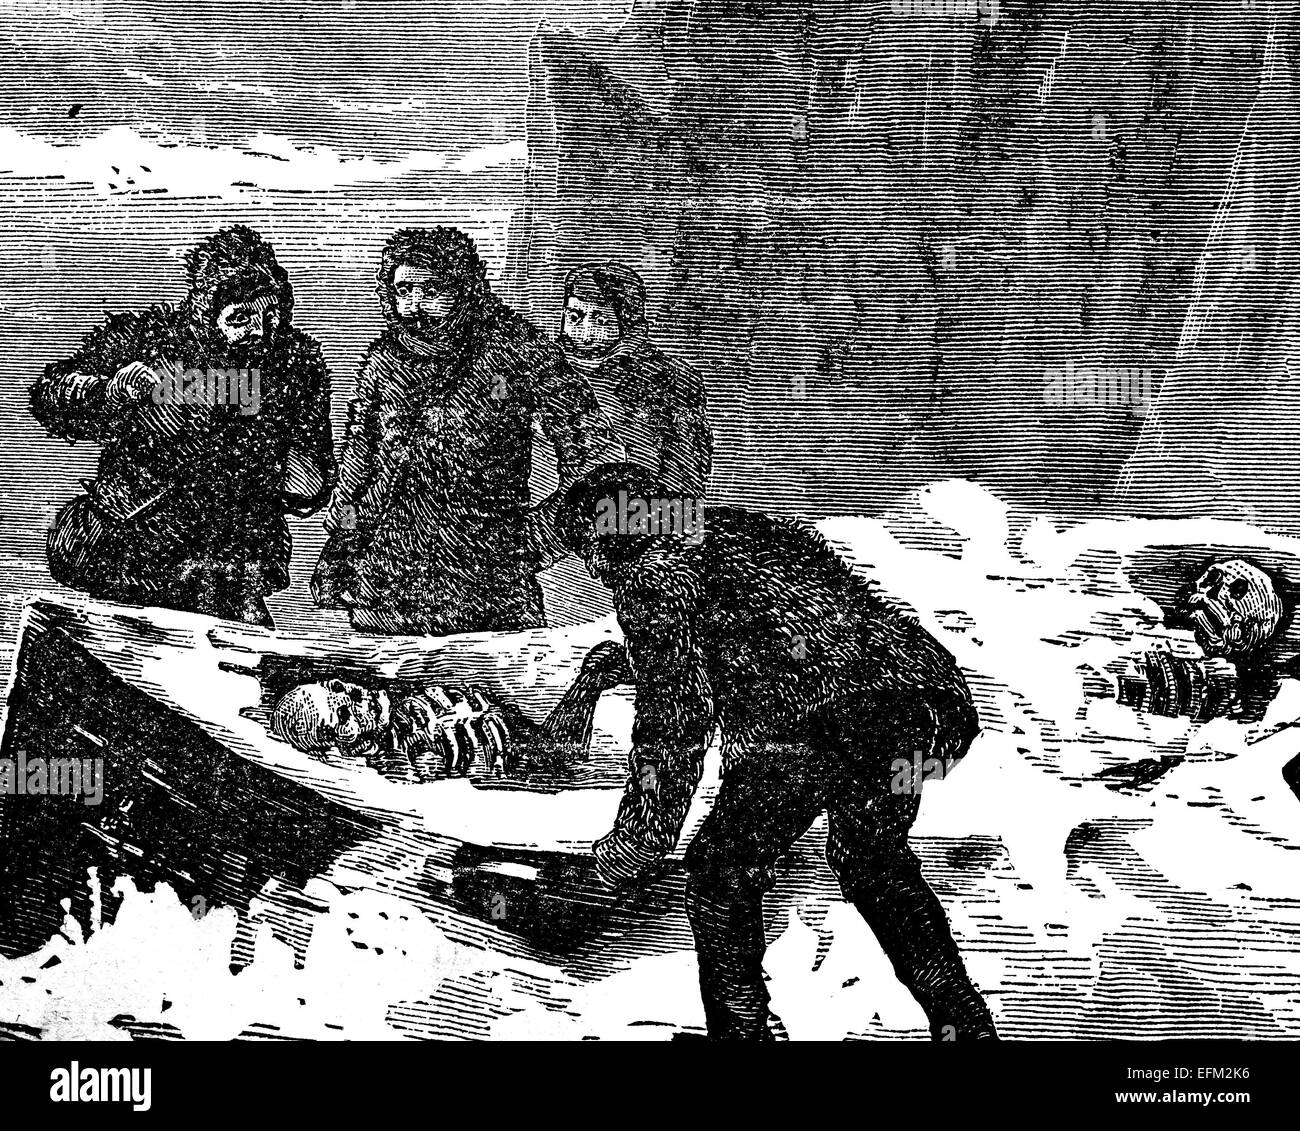 19th century engraving of explorers finding skeletons in a boat in the Northwest Passage, Arctic - Stock Image